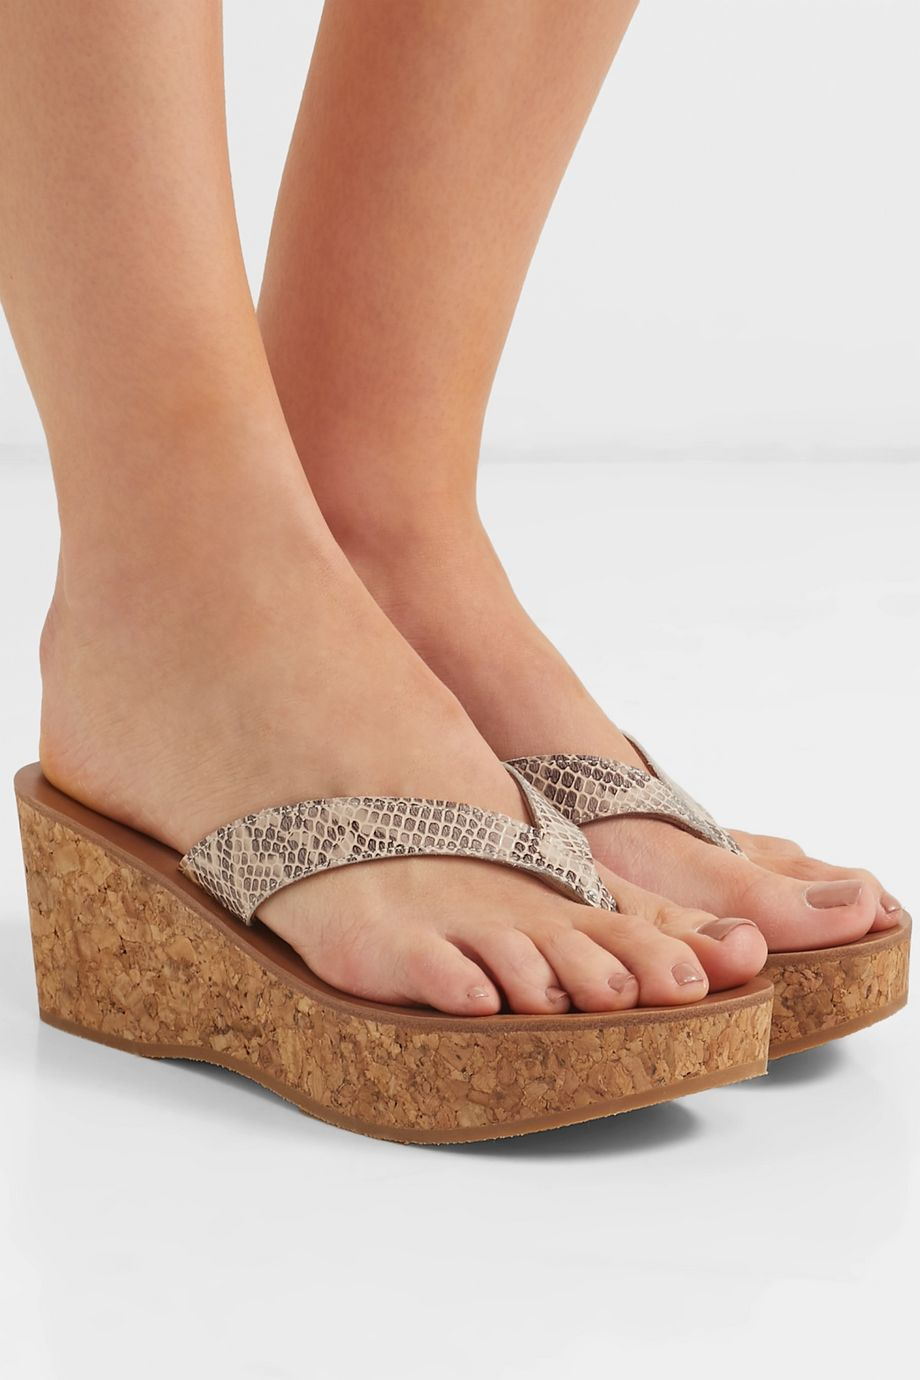 K Jacques St Tropez Diorite snake-effect leather wedge sandals